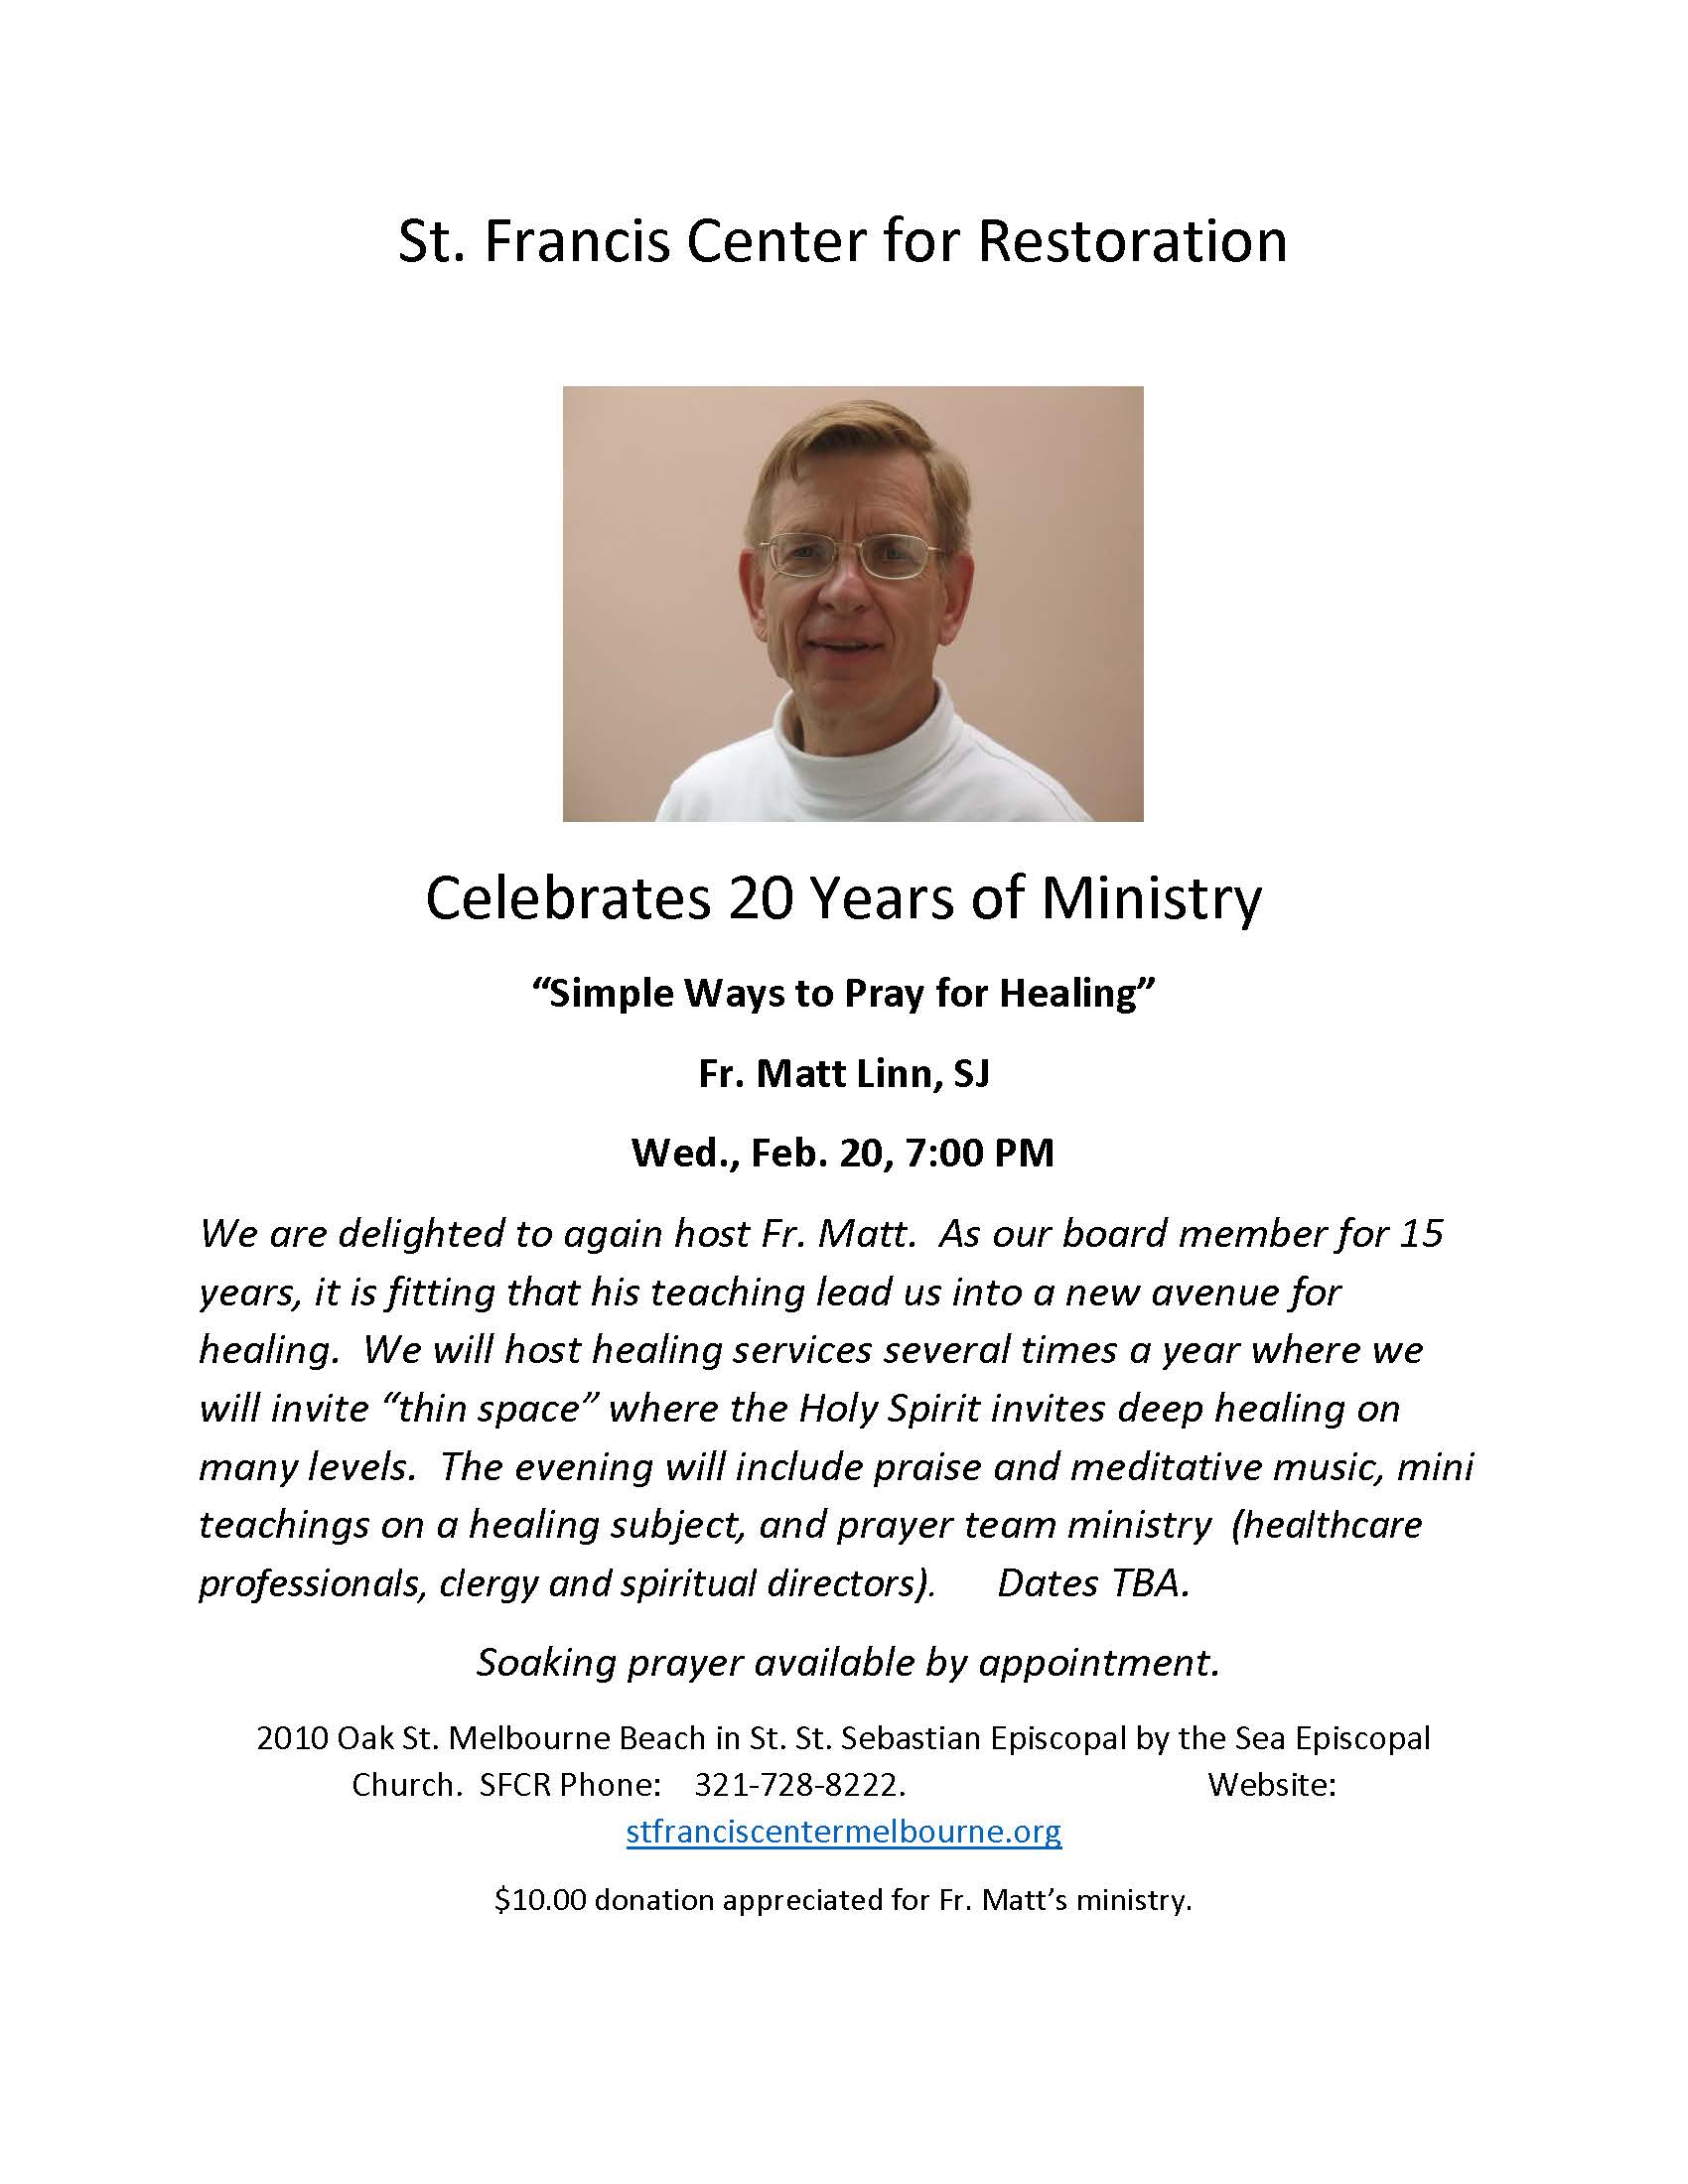 Feb 20 Fr. Matt Linn, SJ Event